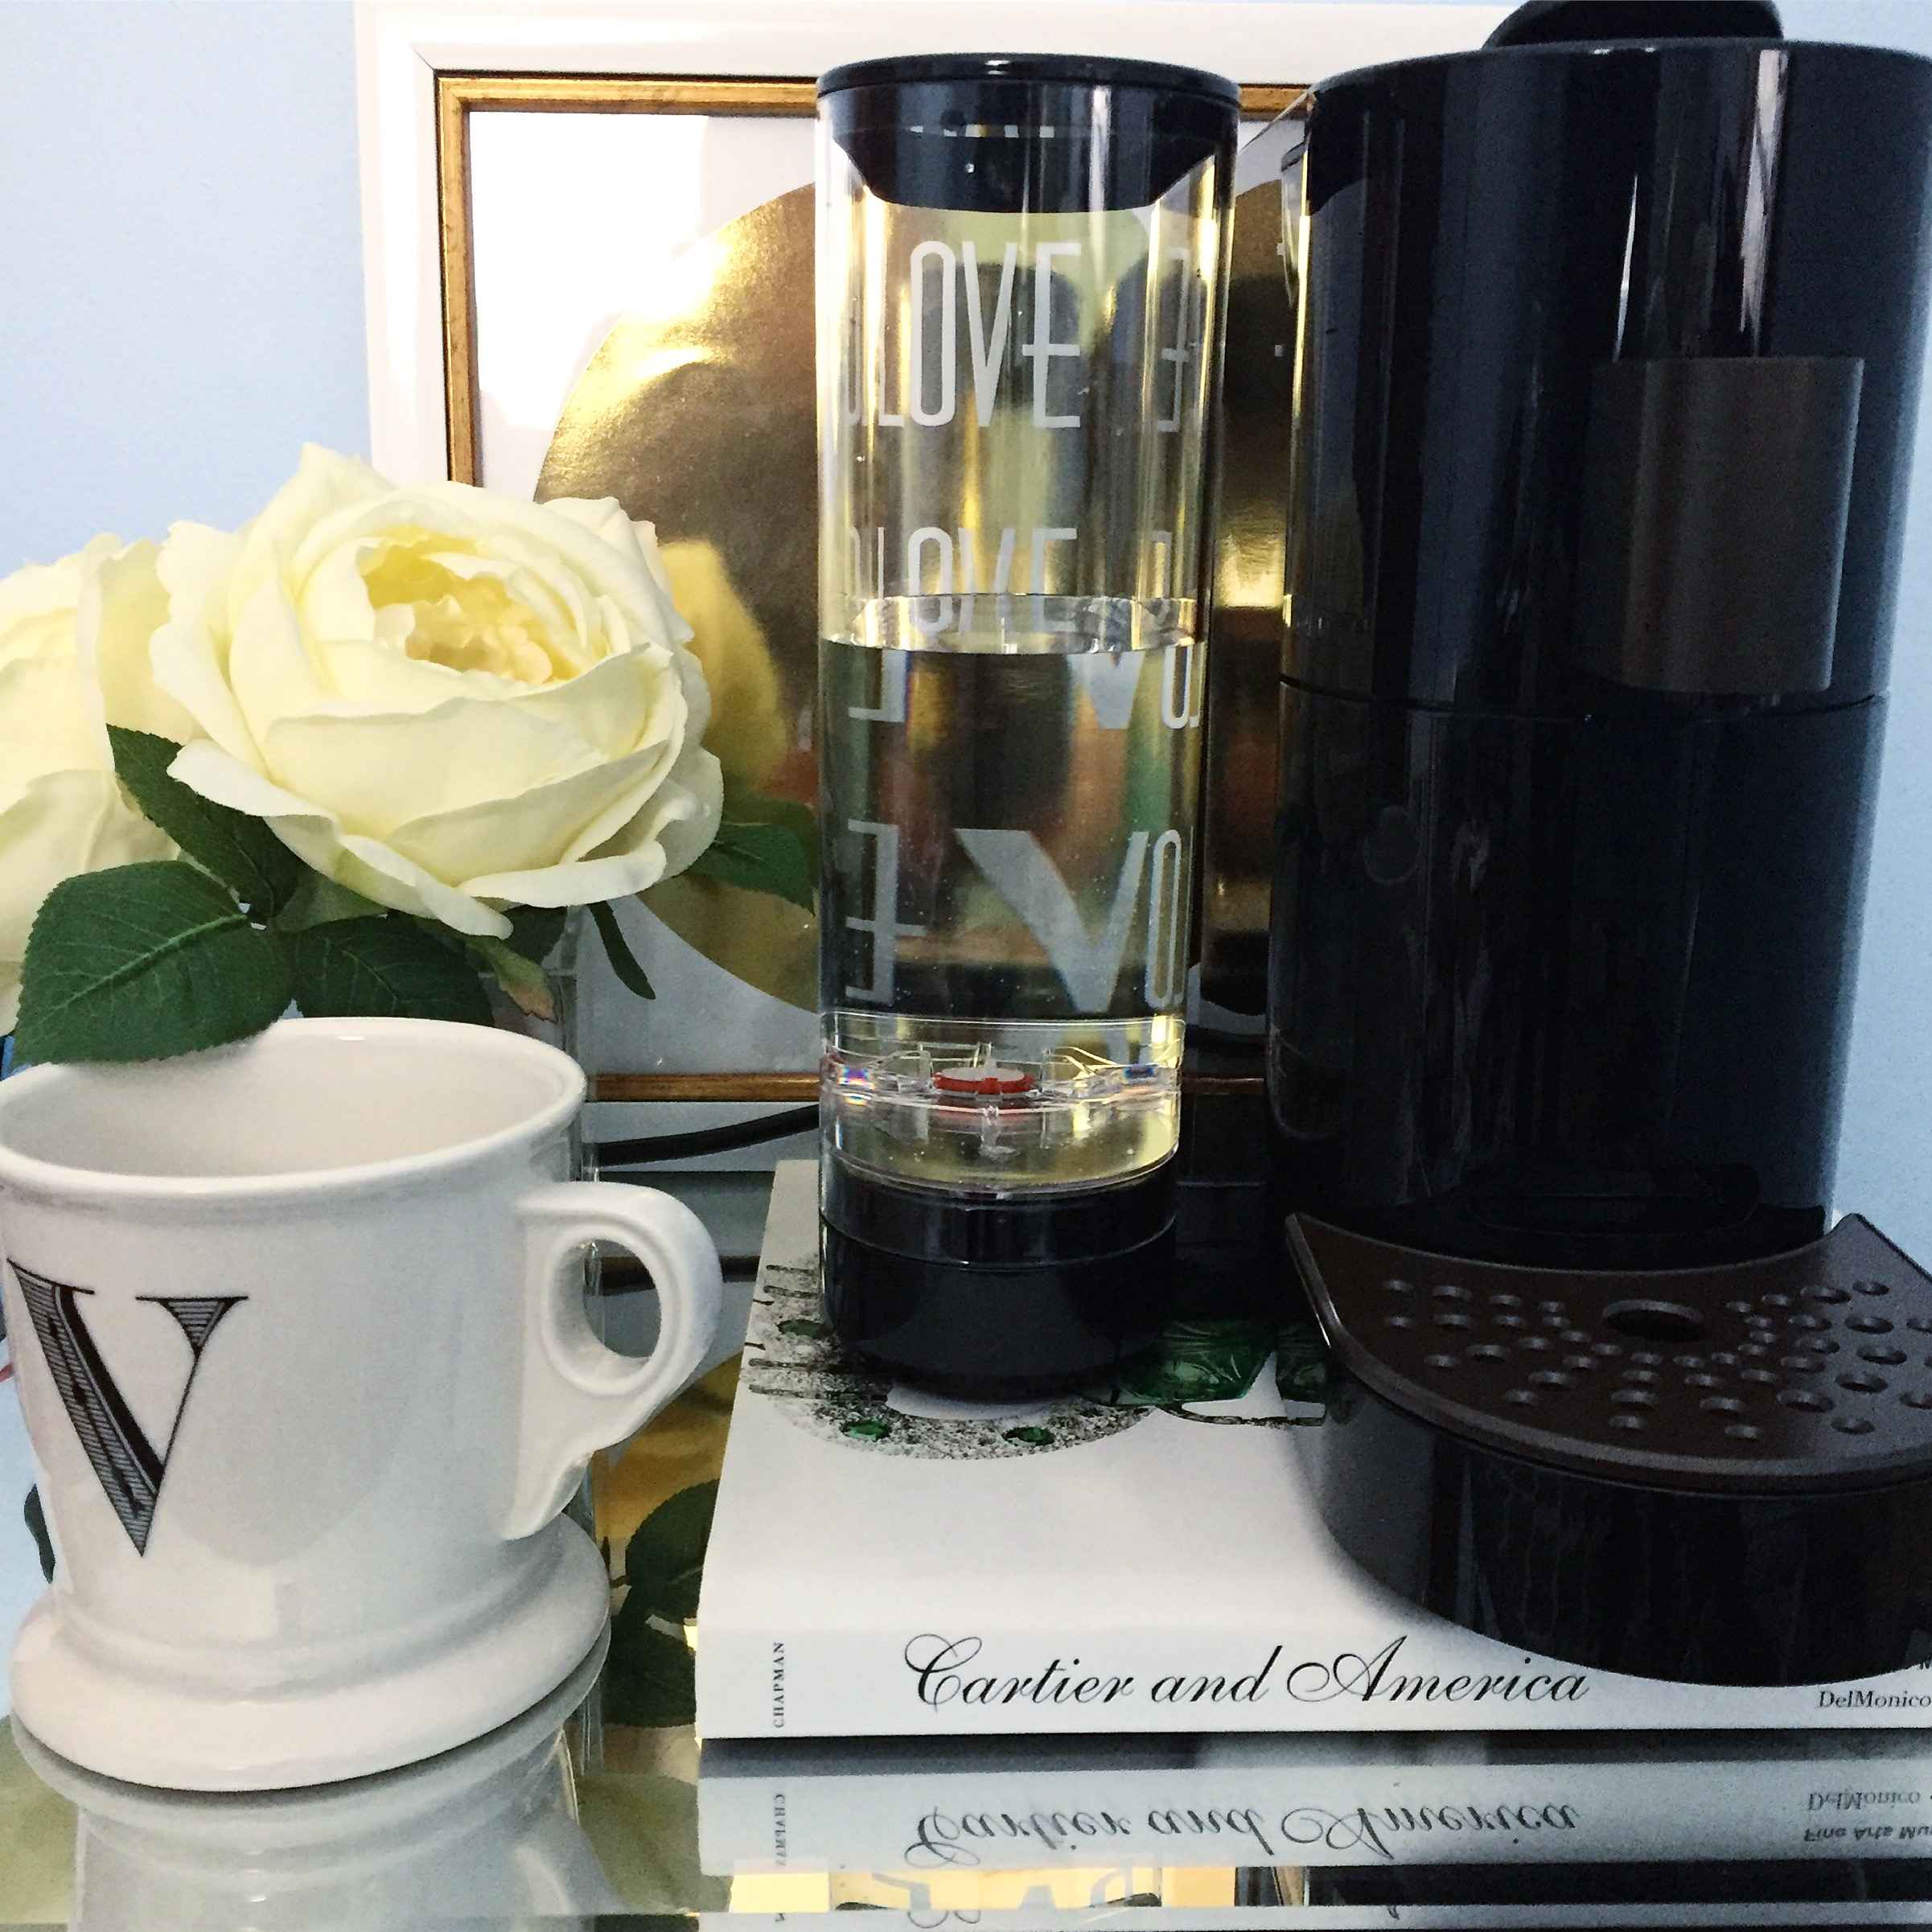 Verismo from Starbucks